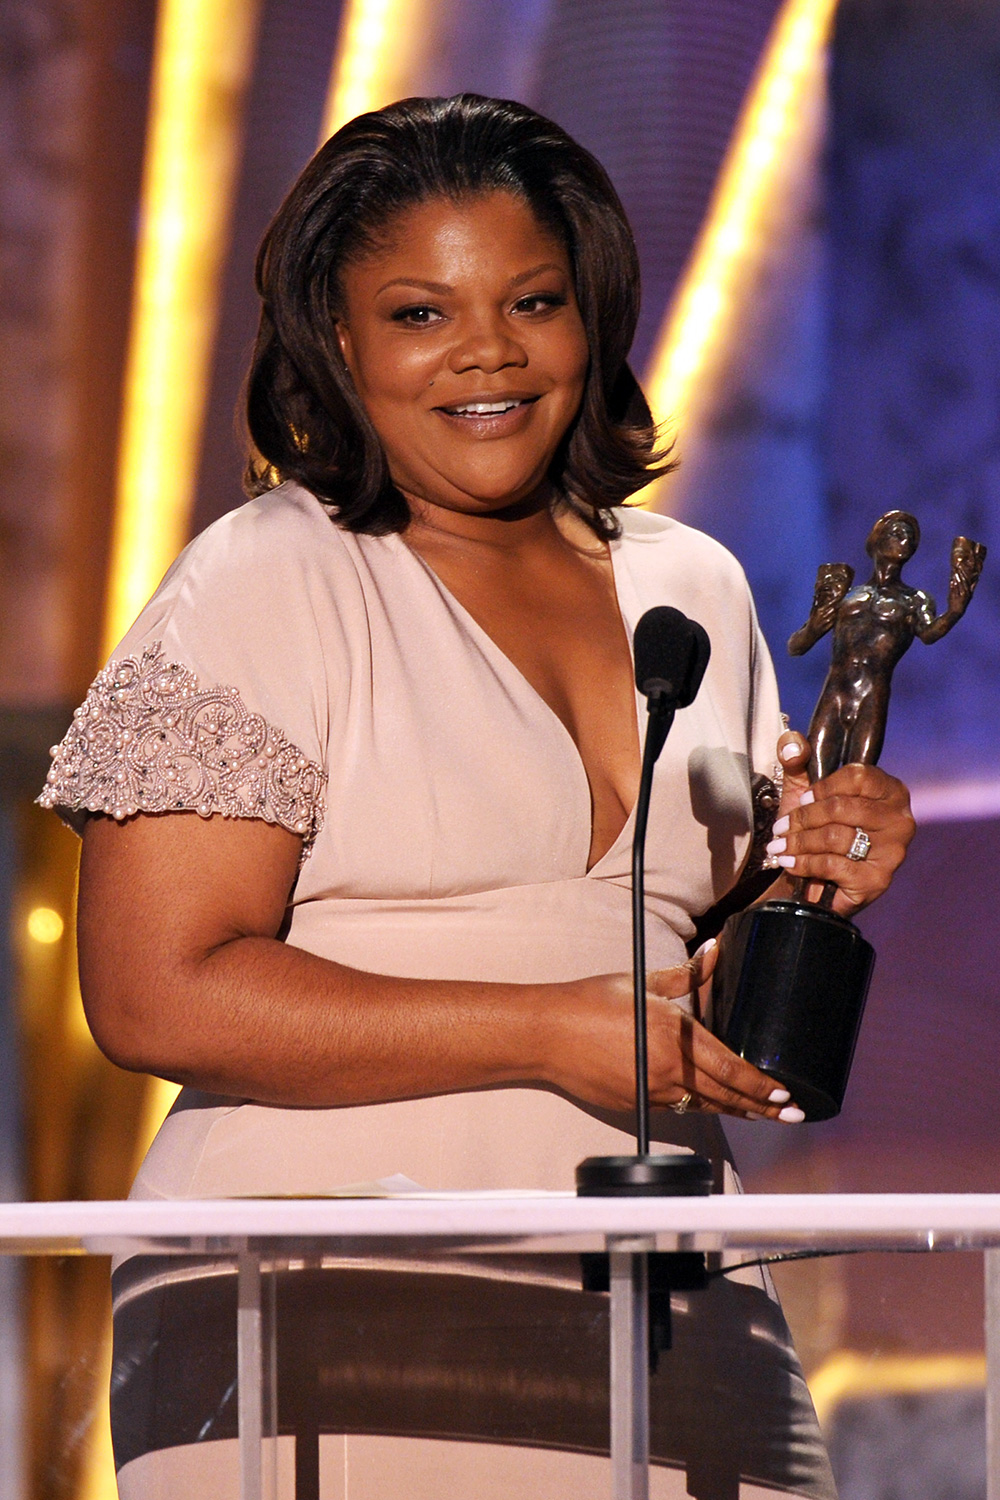 Monique onstage at the TNT/TBS broadcast of the 16th Annual Screen Actors Guild Awards held at the Shrine Auditorium on January 23, 2010 in Los Angeles, California